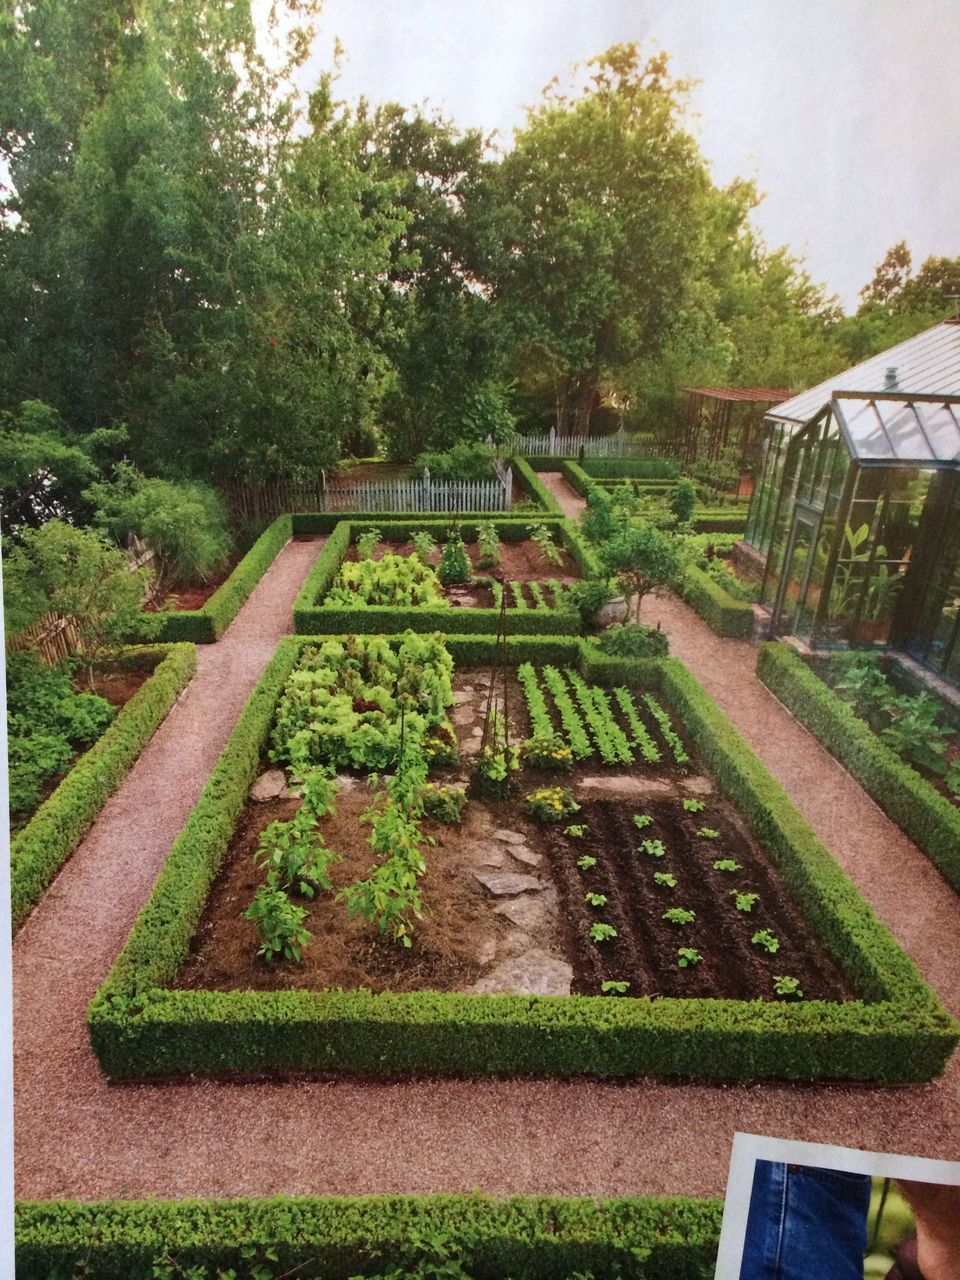 Homestead farm garden layout and design for your home   Pinterest